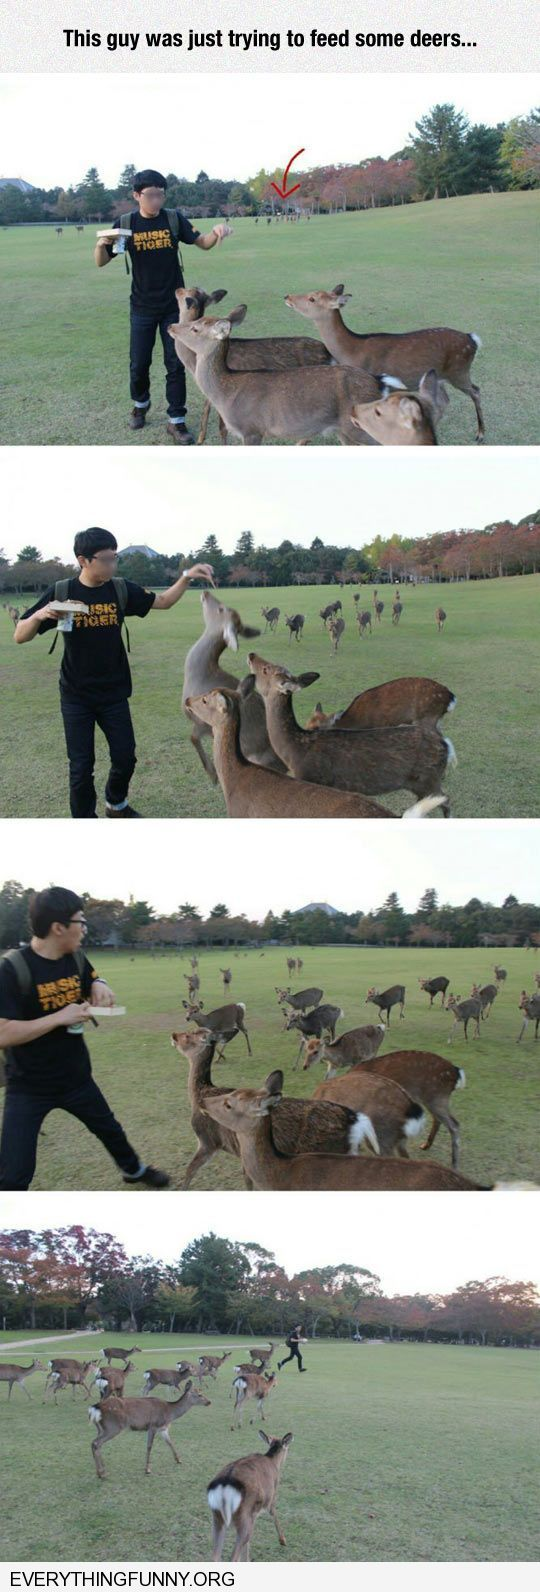 funny caption poor guy gets mobbed by deer when trying to feed just a couple